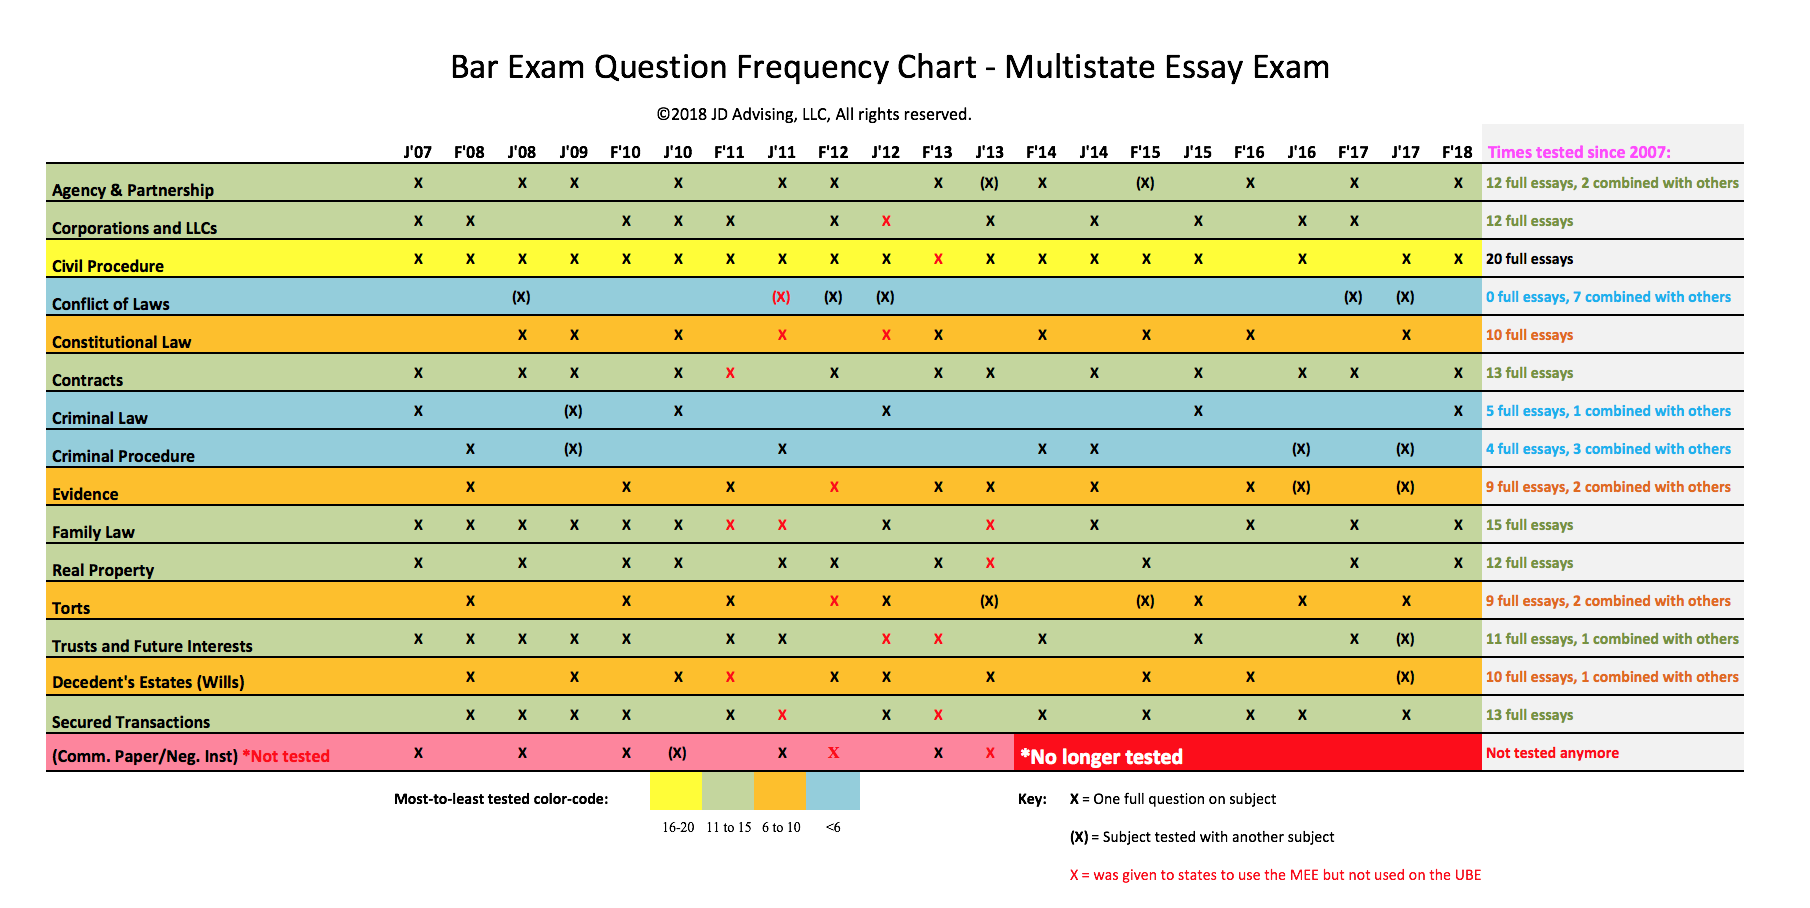 010 Mee Frequency Chart 2018 California Bar Essays Essay Marvelous Exam Graded February How Are Full